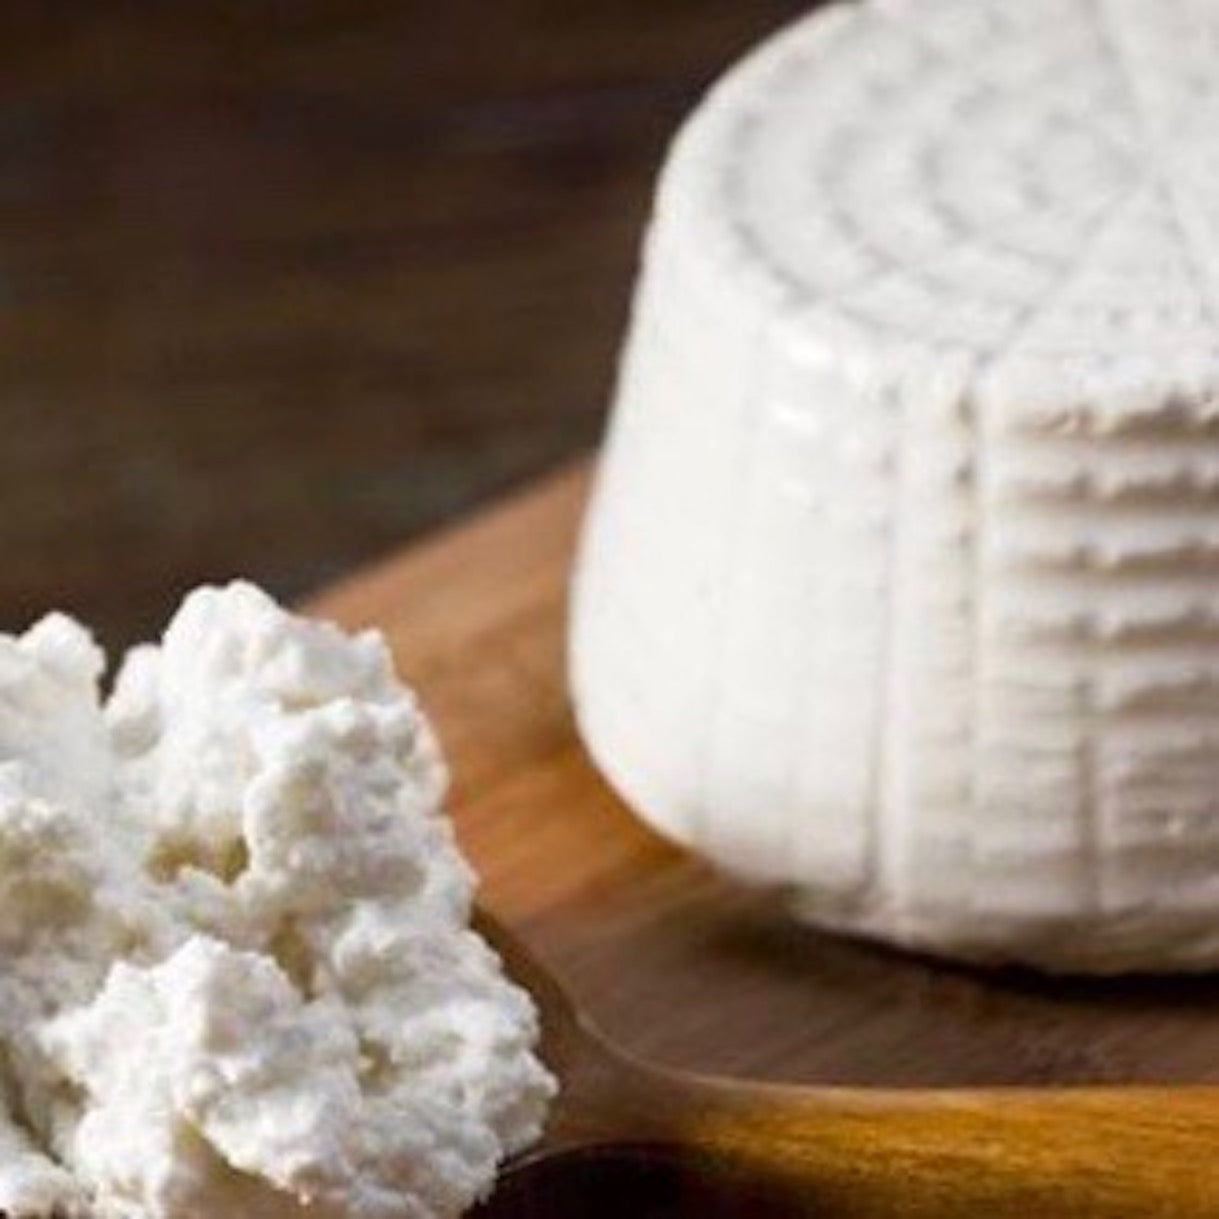 ricotta-di-bufala-italy-online-grocery-delivery-singapore-thenewgrocer